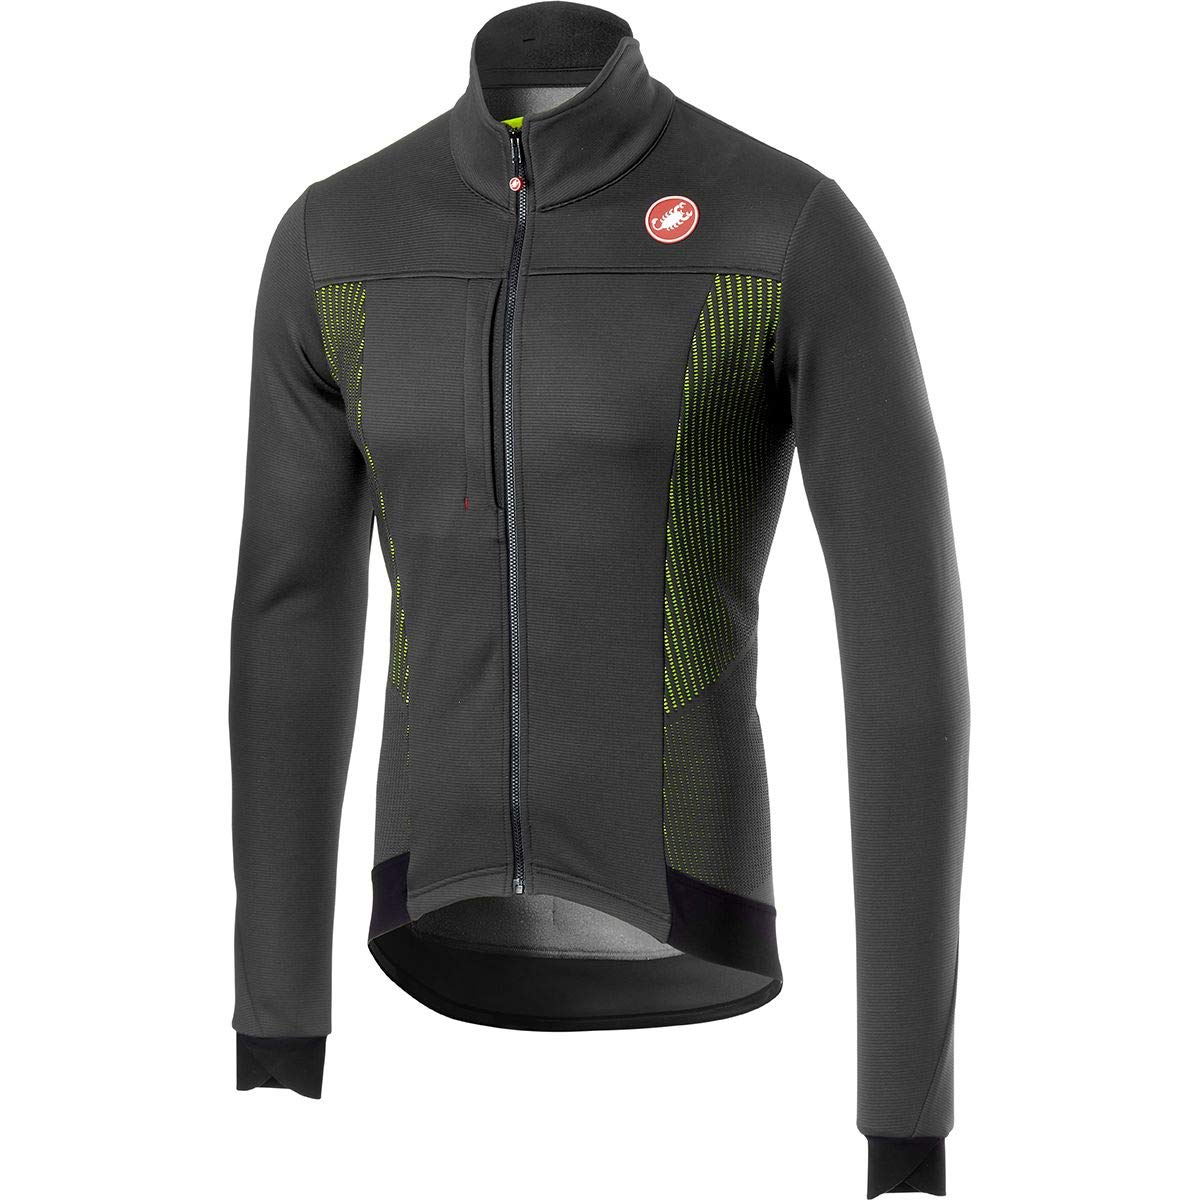 Castelli Espresso Vジャケット メンズ B07H8PLHQF Large|Dark Gray/Yellow Fluo Dark Gray/Yellow Fluo Large